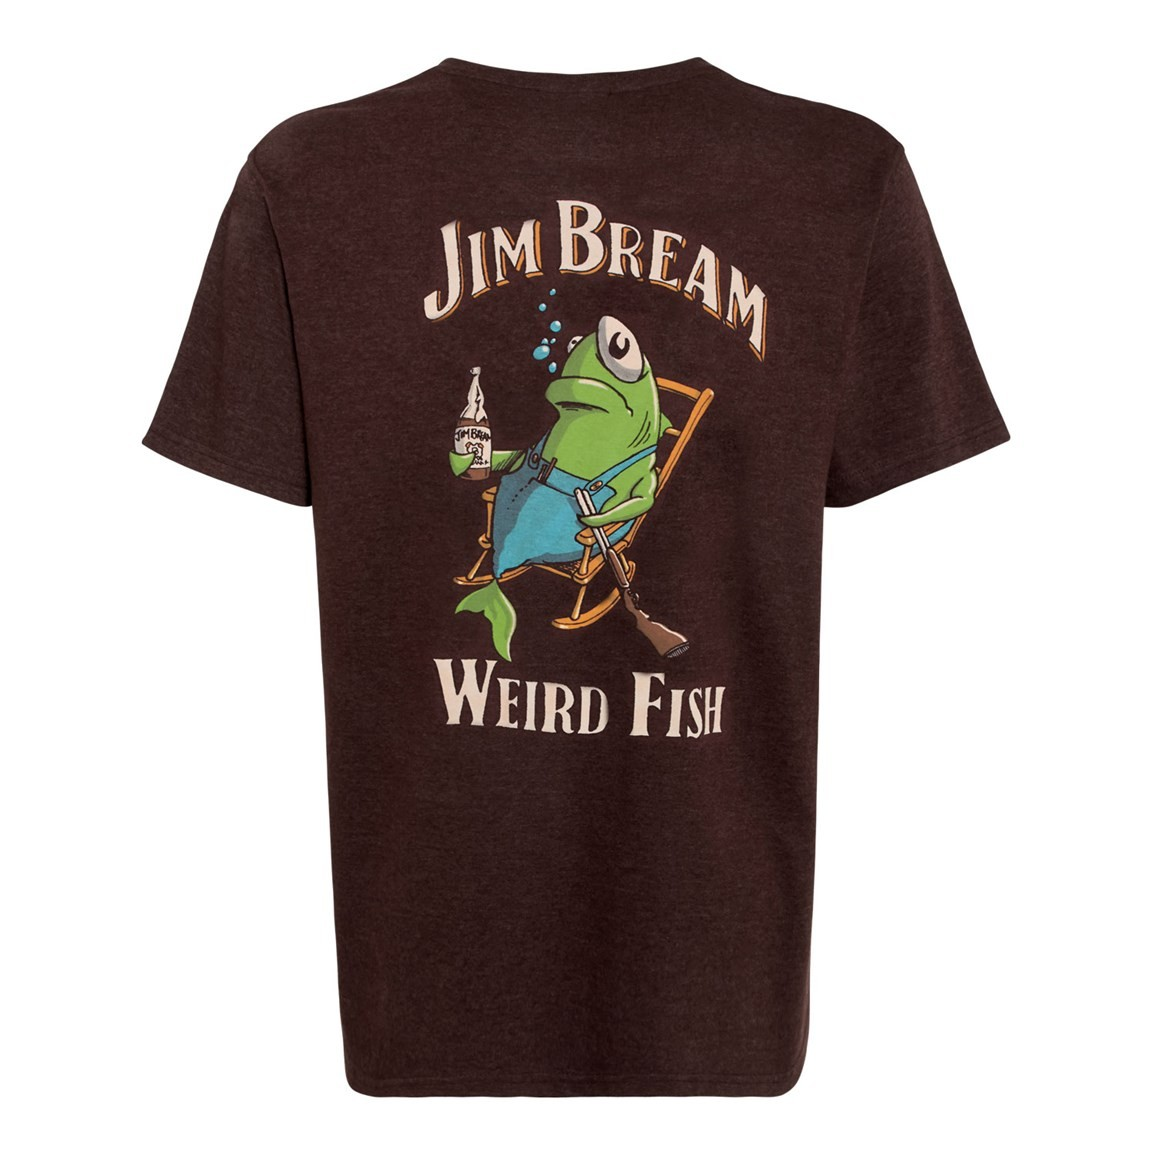 Weird Fish Jim Bream Printed Artist T-Shirt Conker Marl